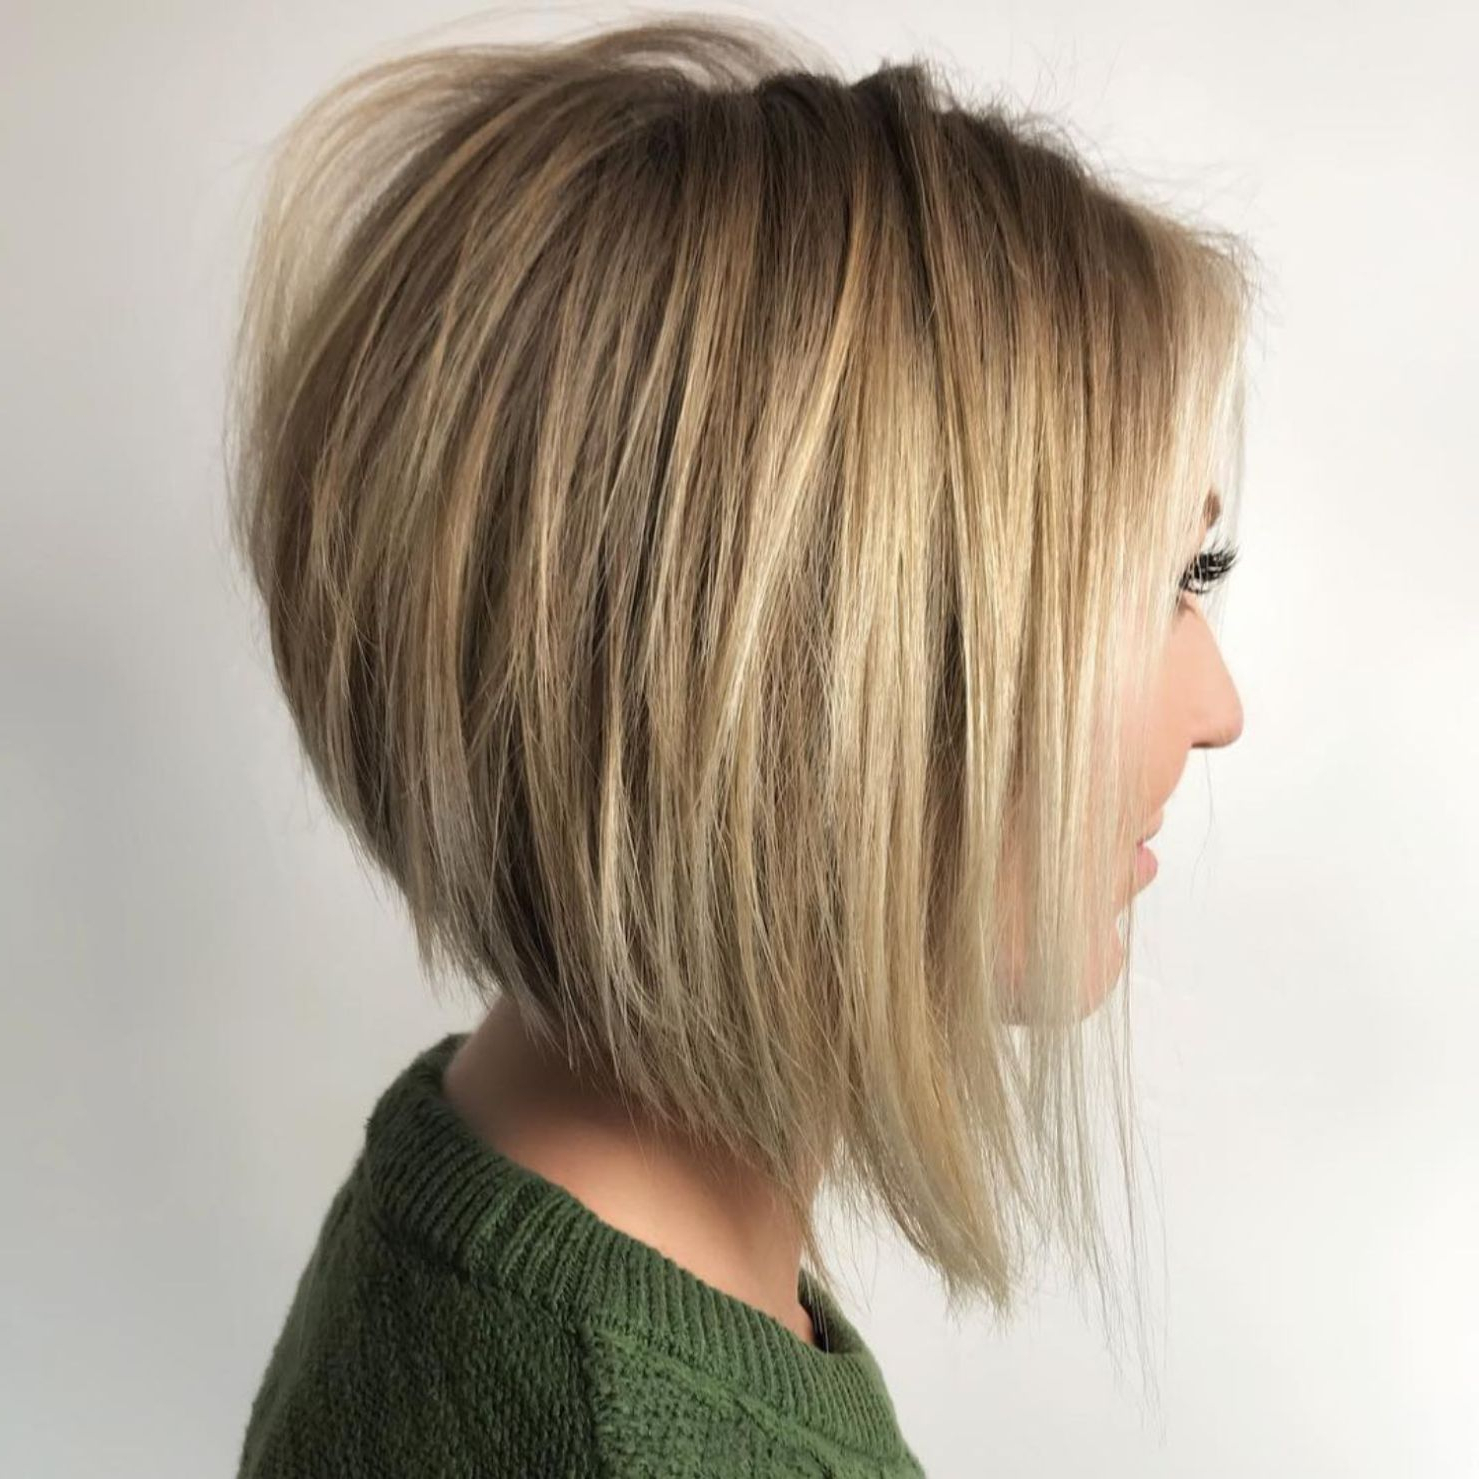 Hair In Preferred Point Cut Bob Hairstyles With Caramel Balayage (View 13 of 20)